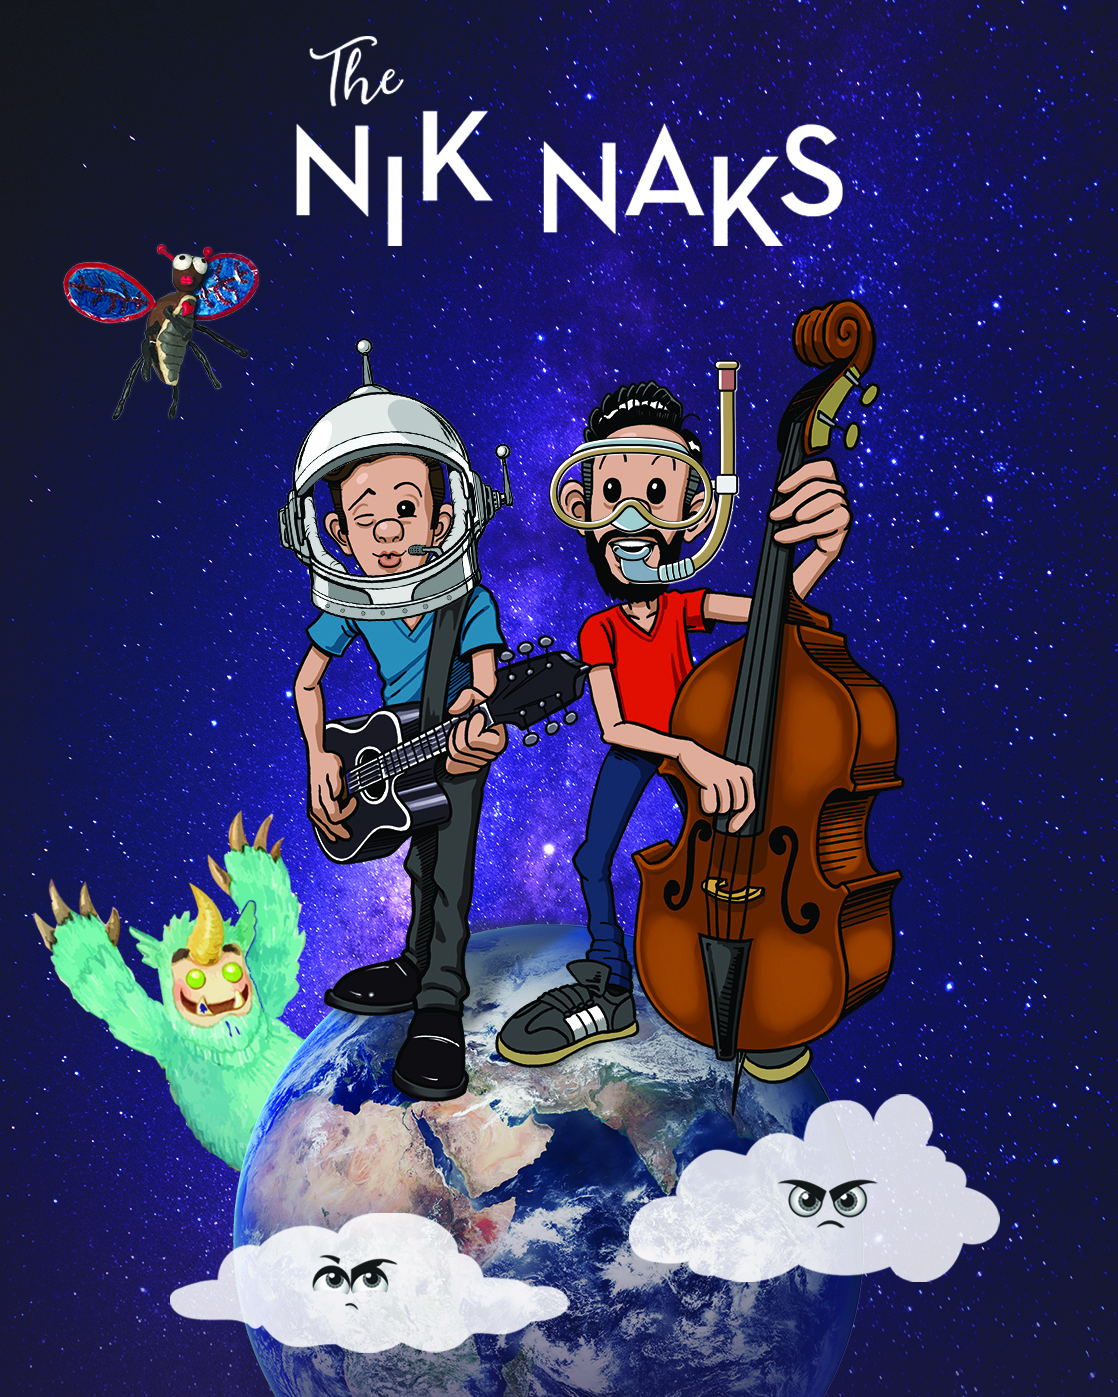 TheNikNaks_Flyer cropped.jpg